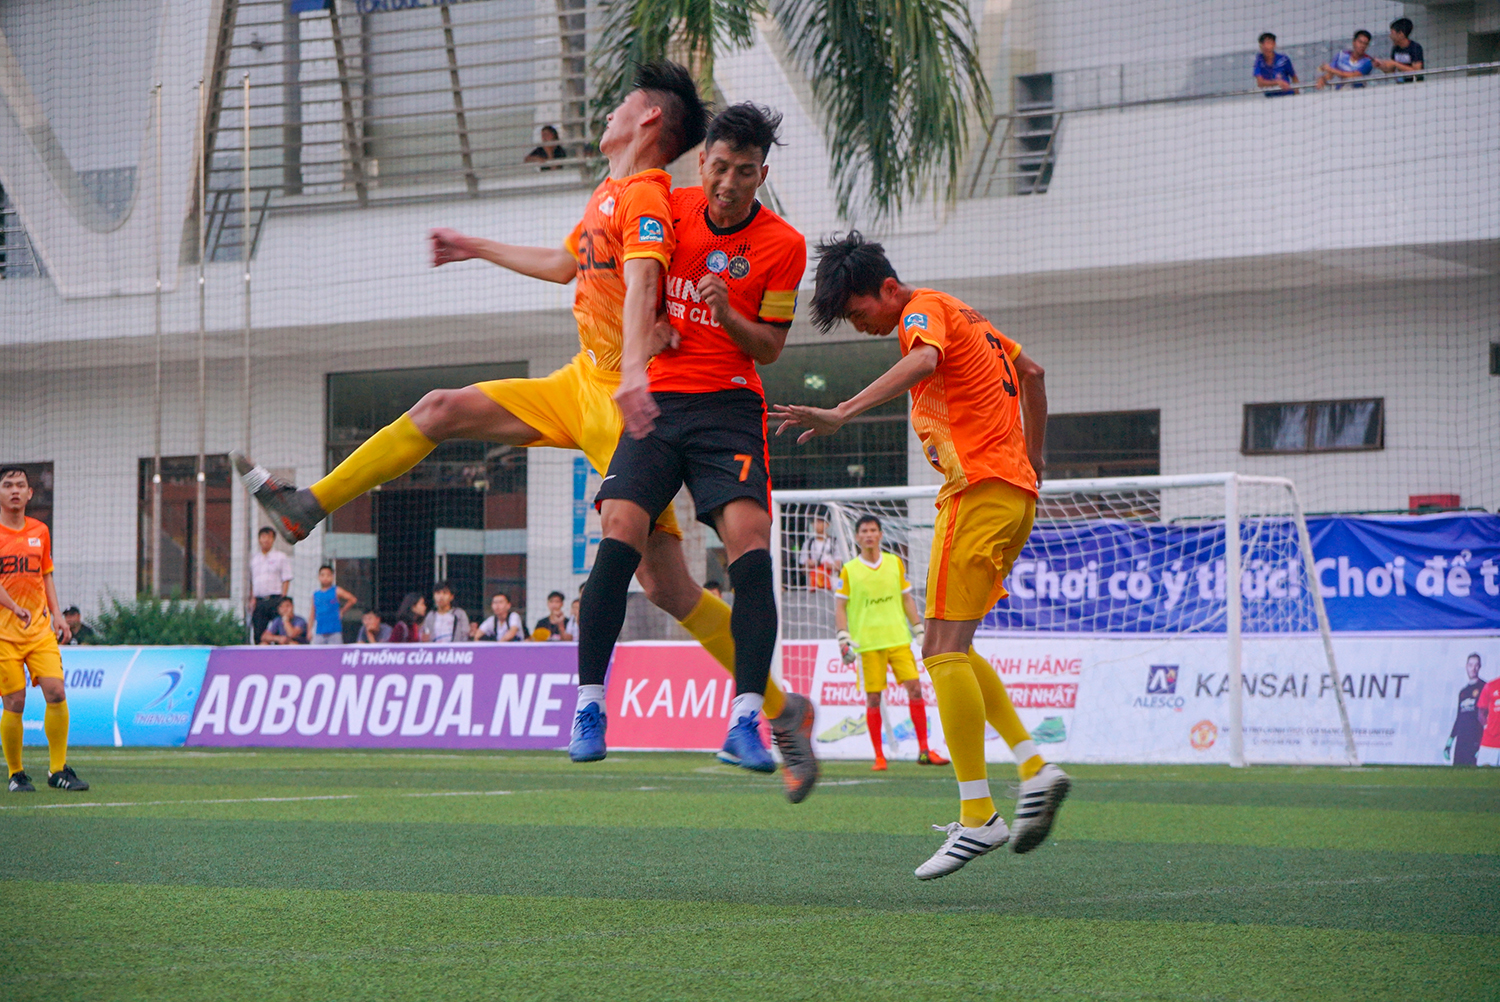 A dramatic opening match between TDTU team and Dong Nai University